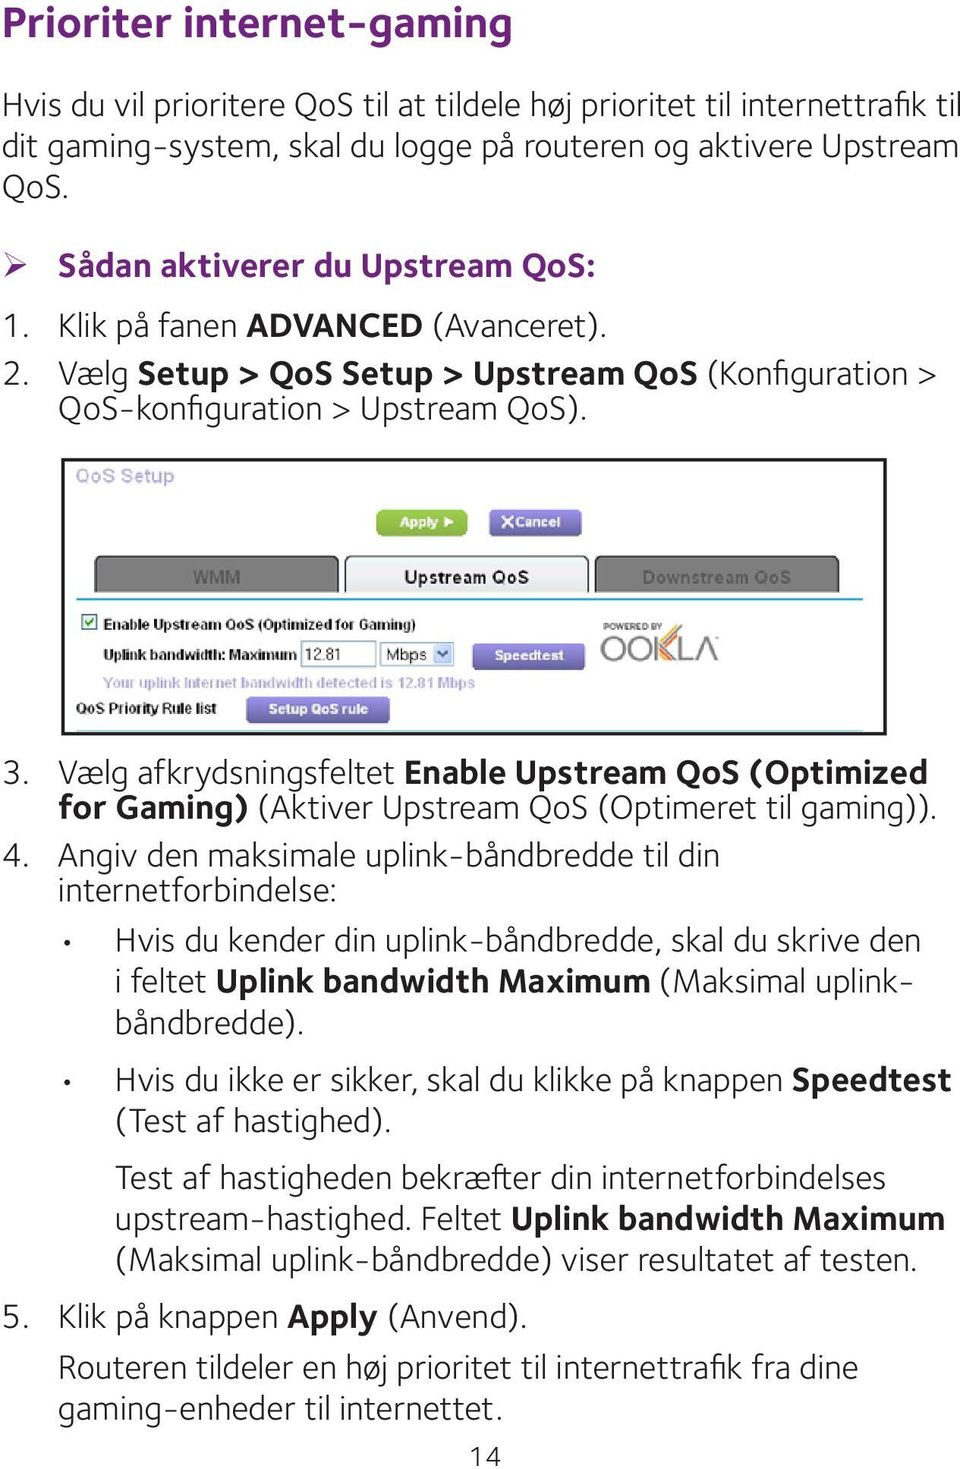 Vælg afkrydsningsfeltet Enable Upstream QoS (Optimized for Gaming) (Aktiver Upstream QoS (Optimeret til gaming)). 4.